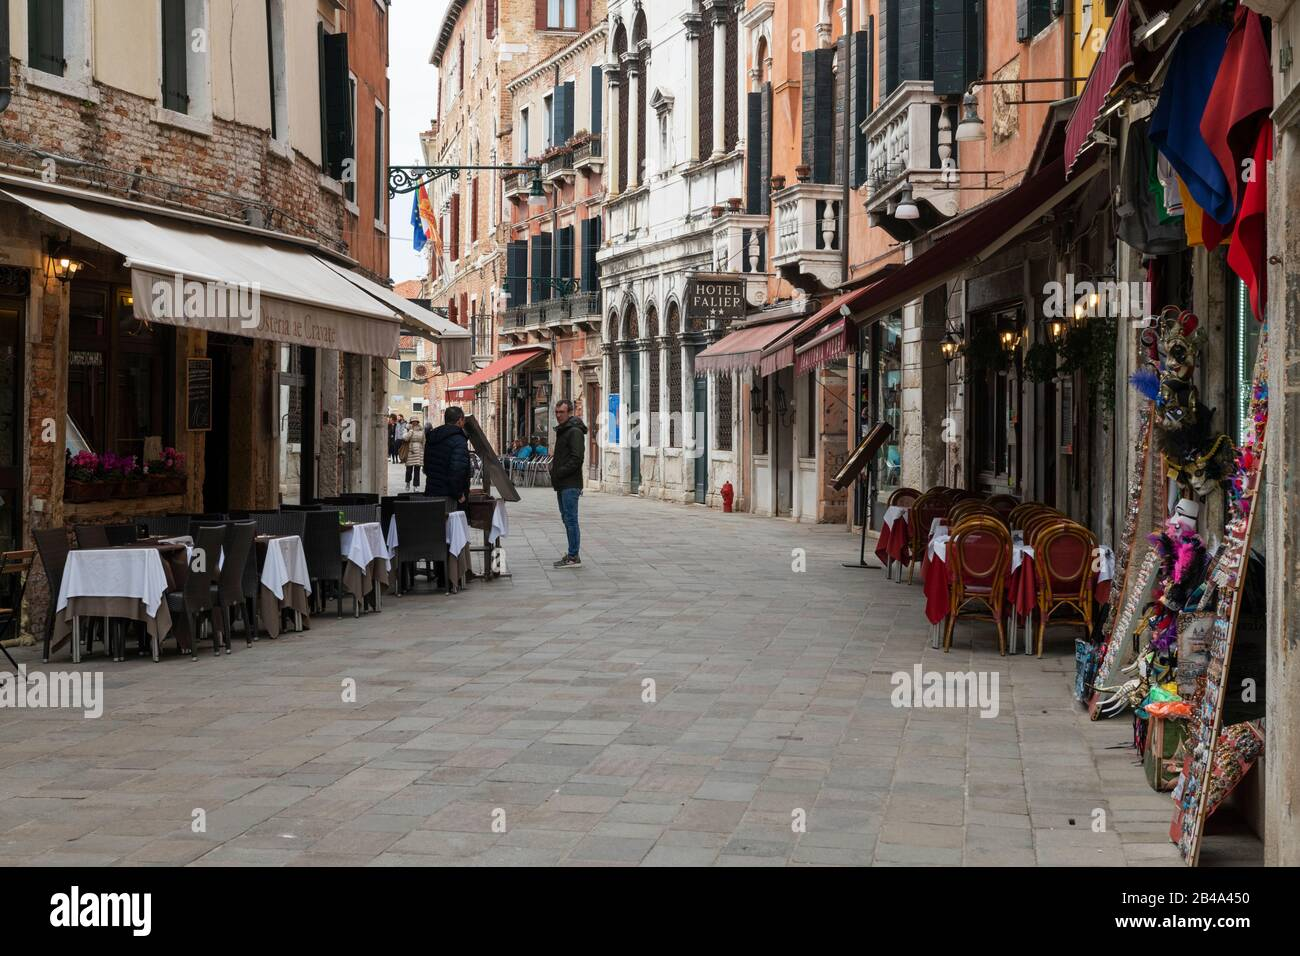 Venice, February 25th - March 3rd. 2020: Bars and restaurants  are suffering from a drastic drop in business as the Coronavirus epidemic scares tourist from visiting Vence and cancelling their trip. Restaurants and bars are laying off members of staff as trade has dropped off dramatically. Stock Photo